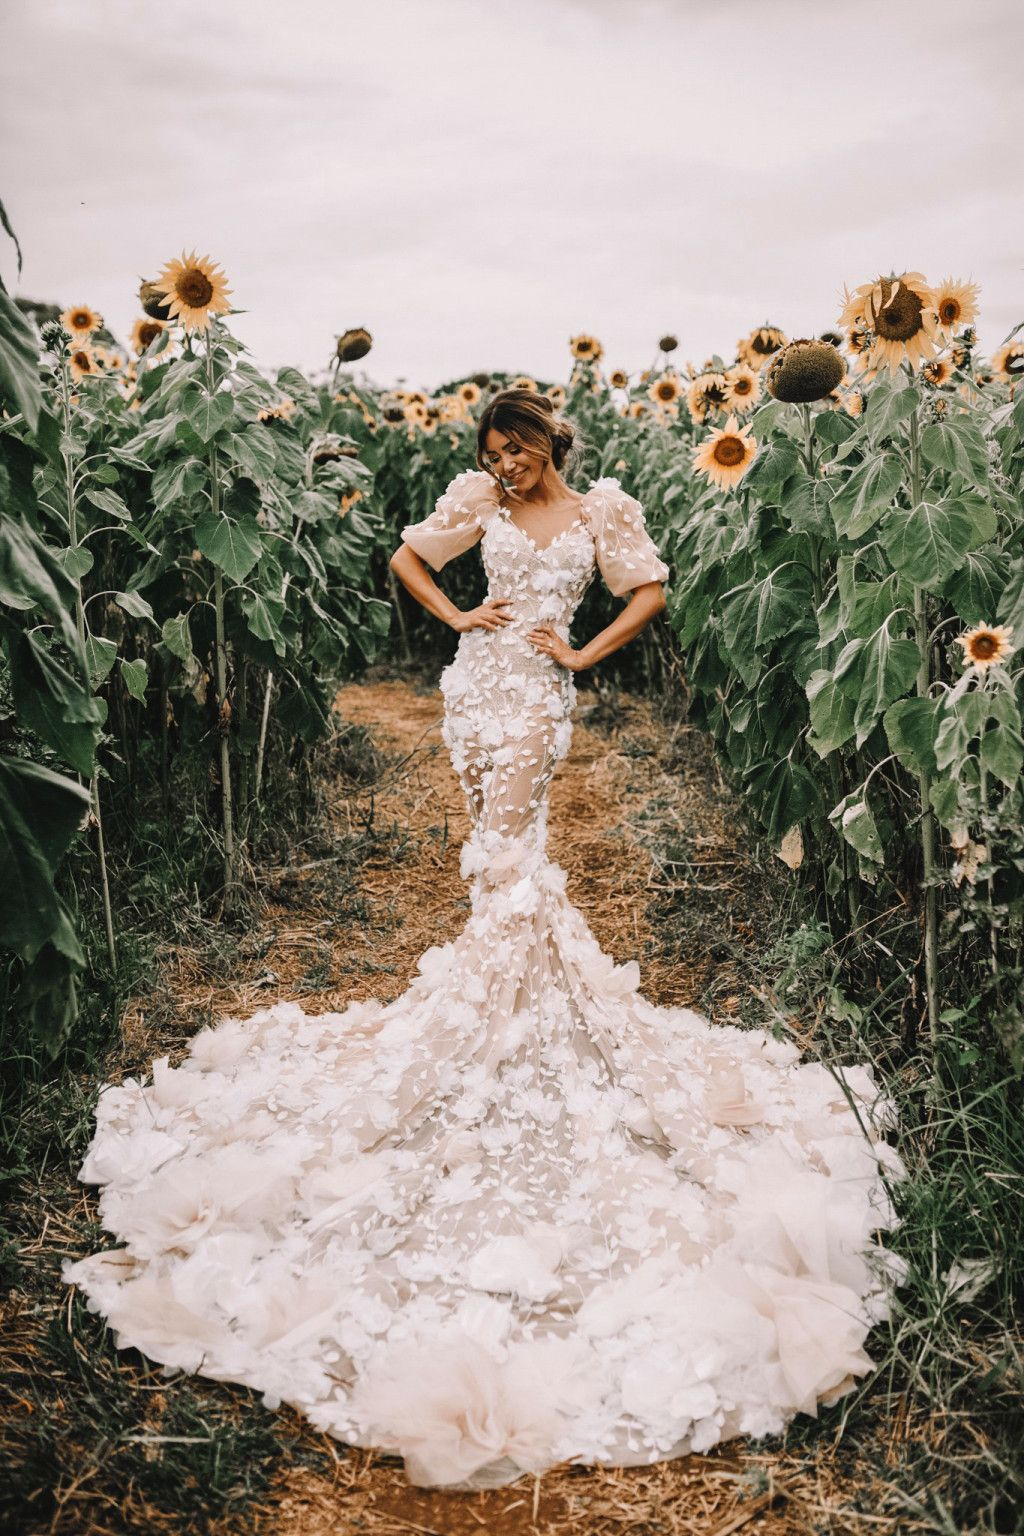 Photo of Exclusive: Behind the scenes at Pia Muehlenbeck's magical wedding